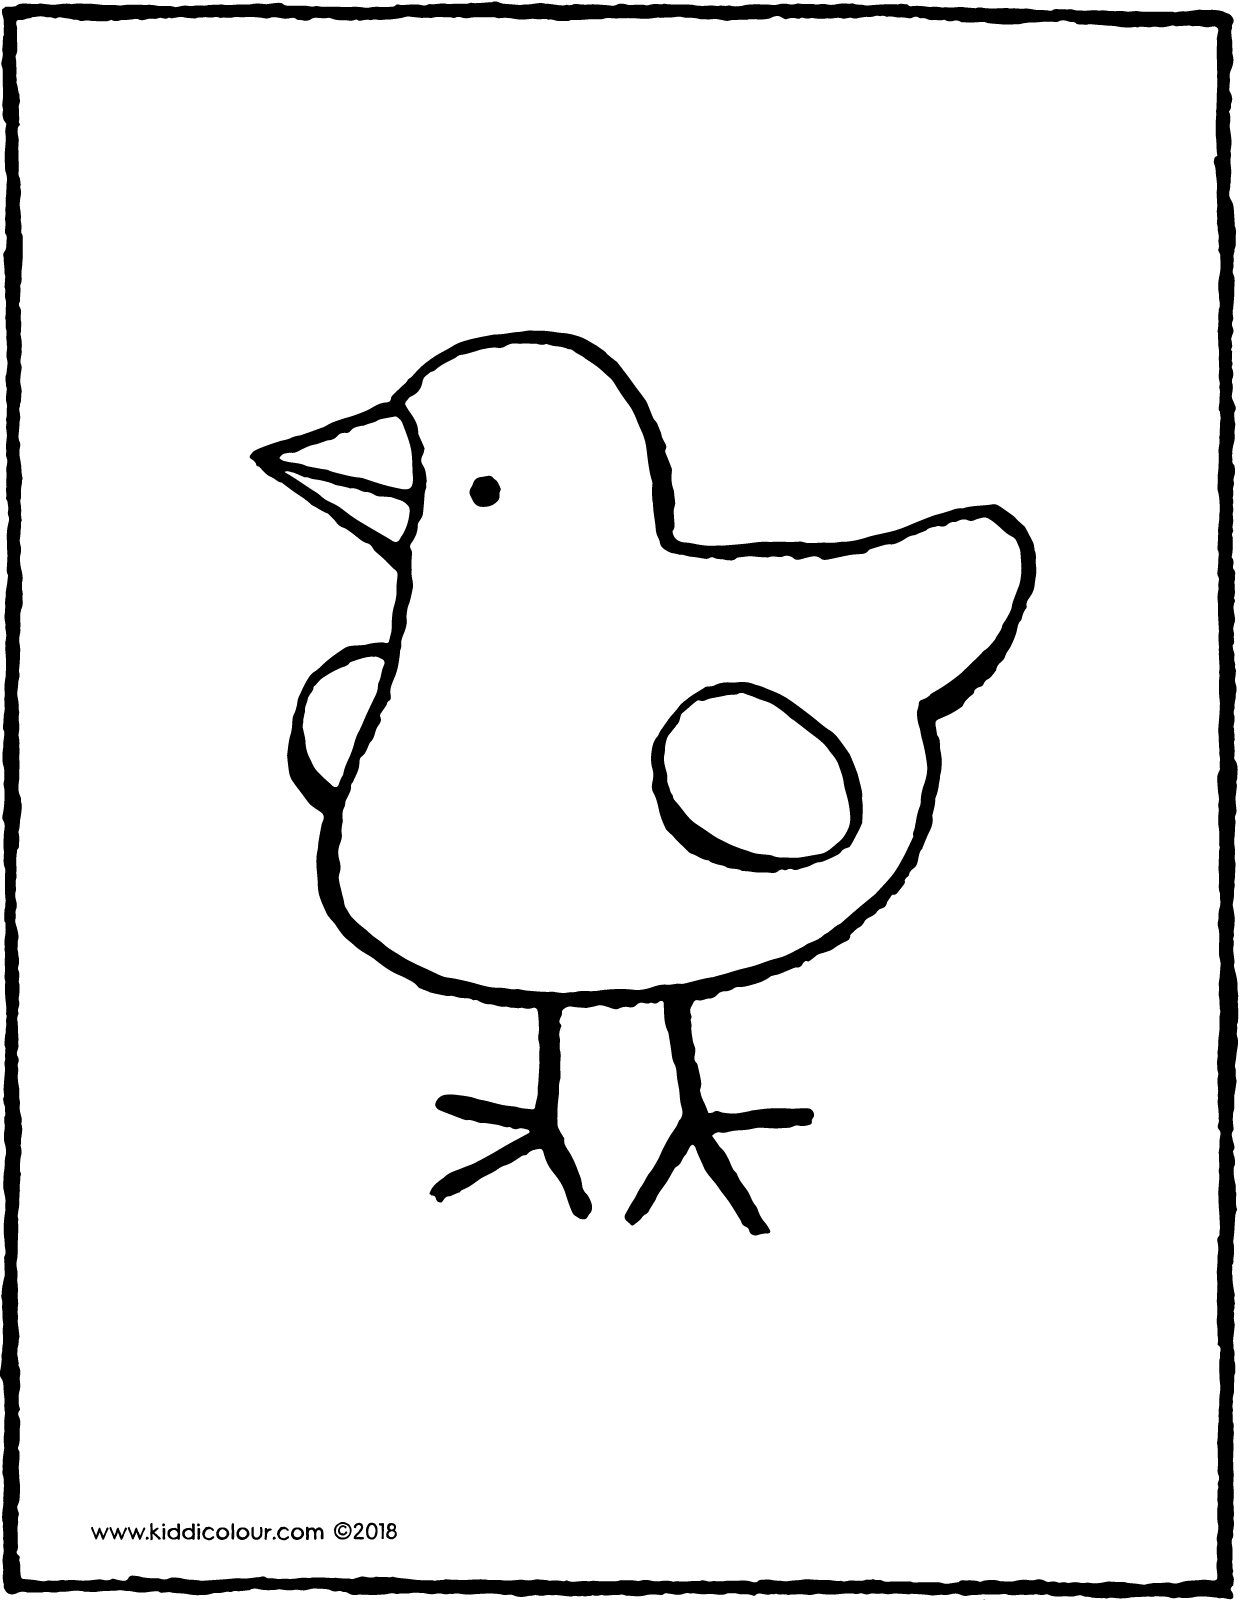 chick colouring page drawing picture 01V